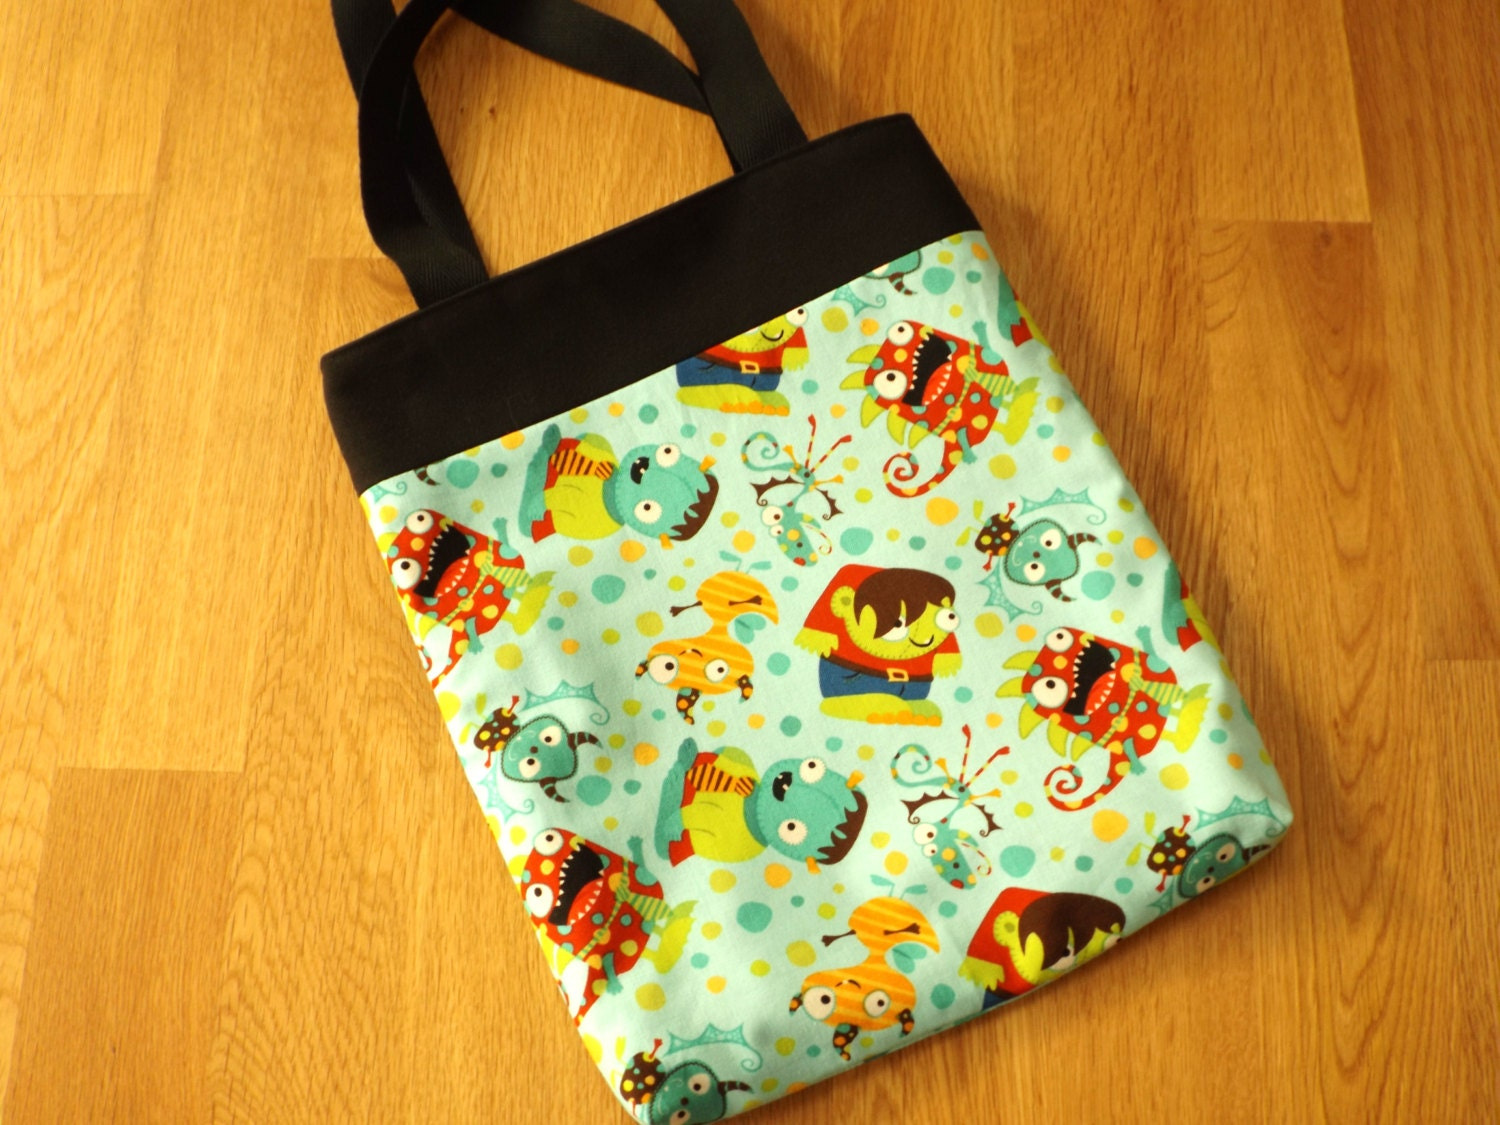 Halloween trick or treat bag  tote. Main fabric light blue and decorated with monsters